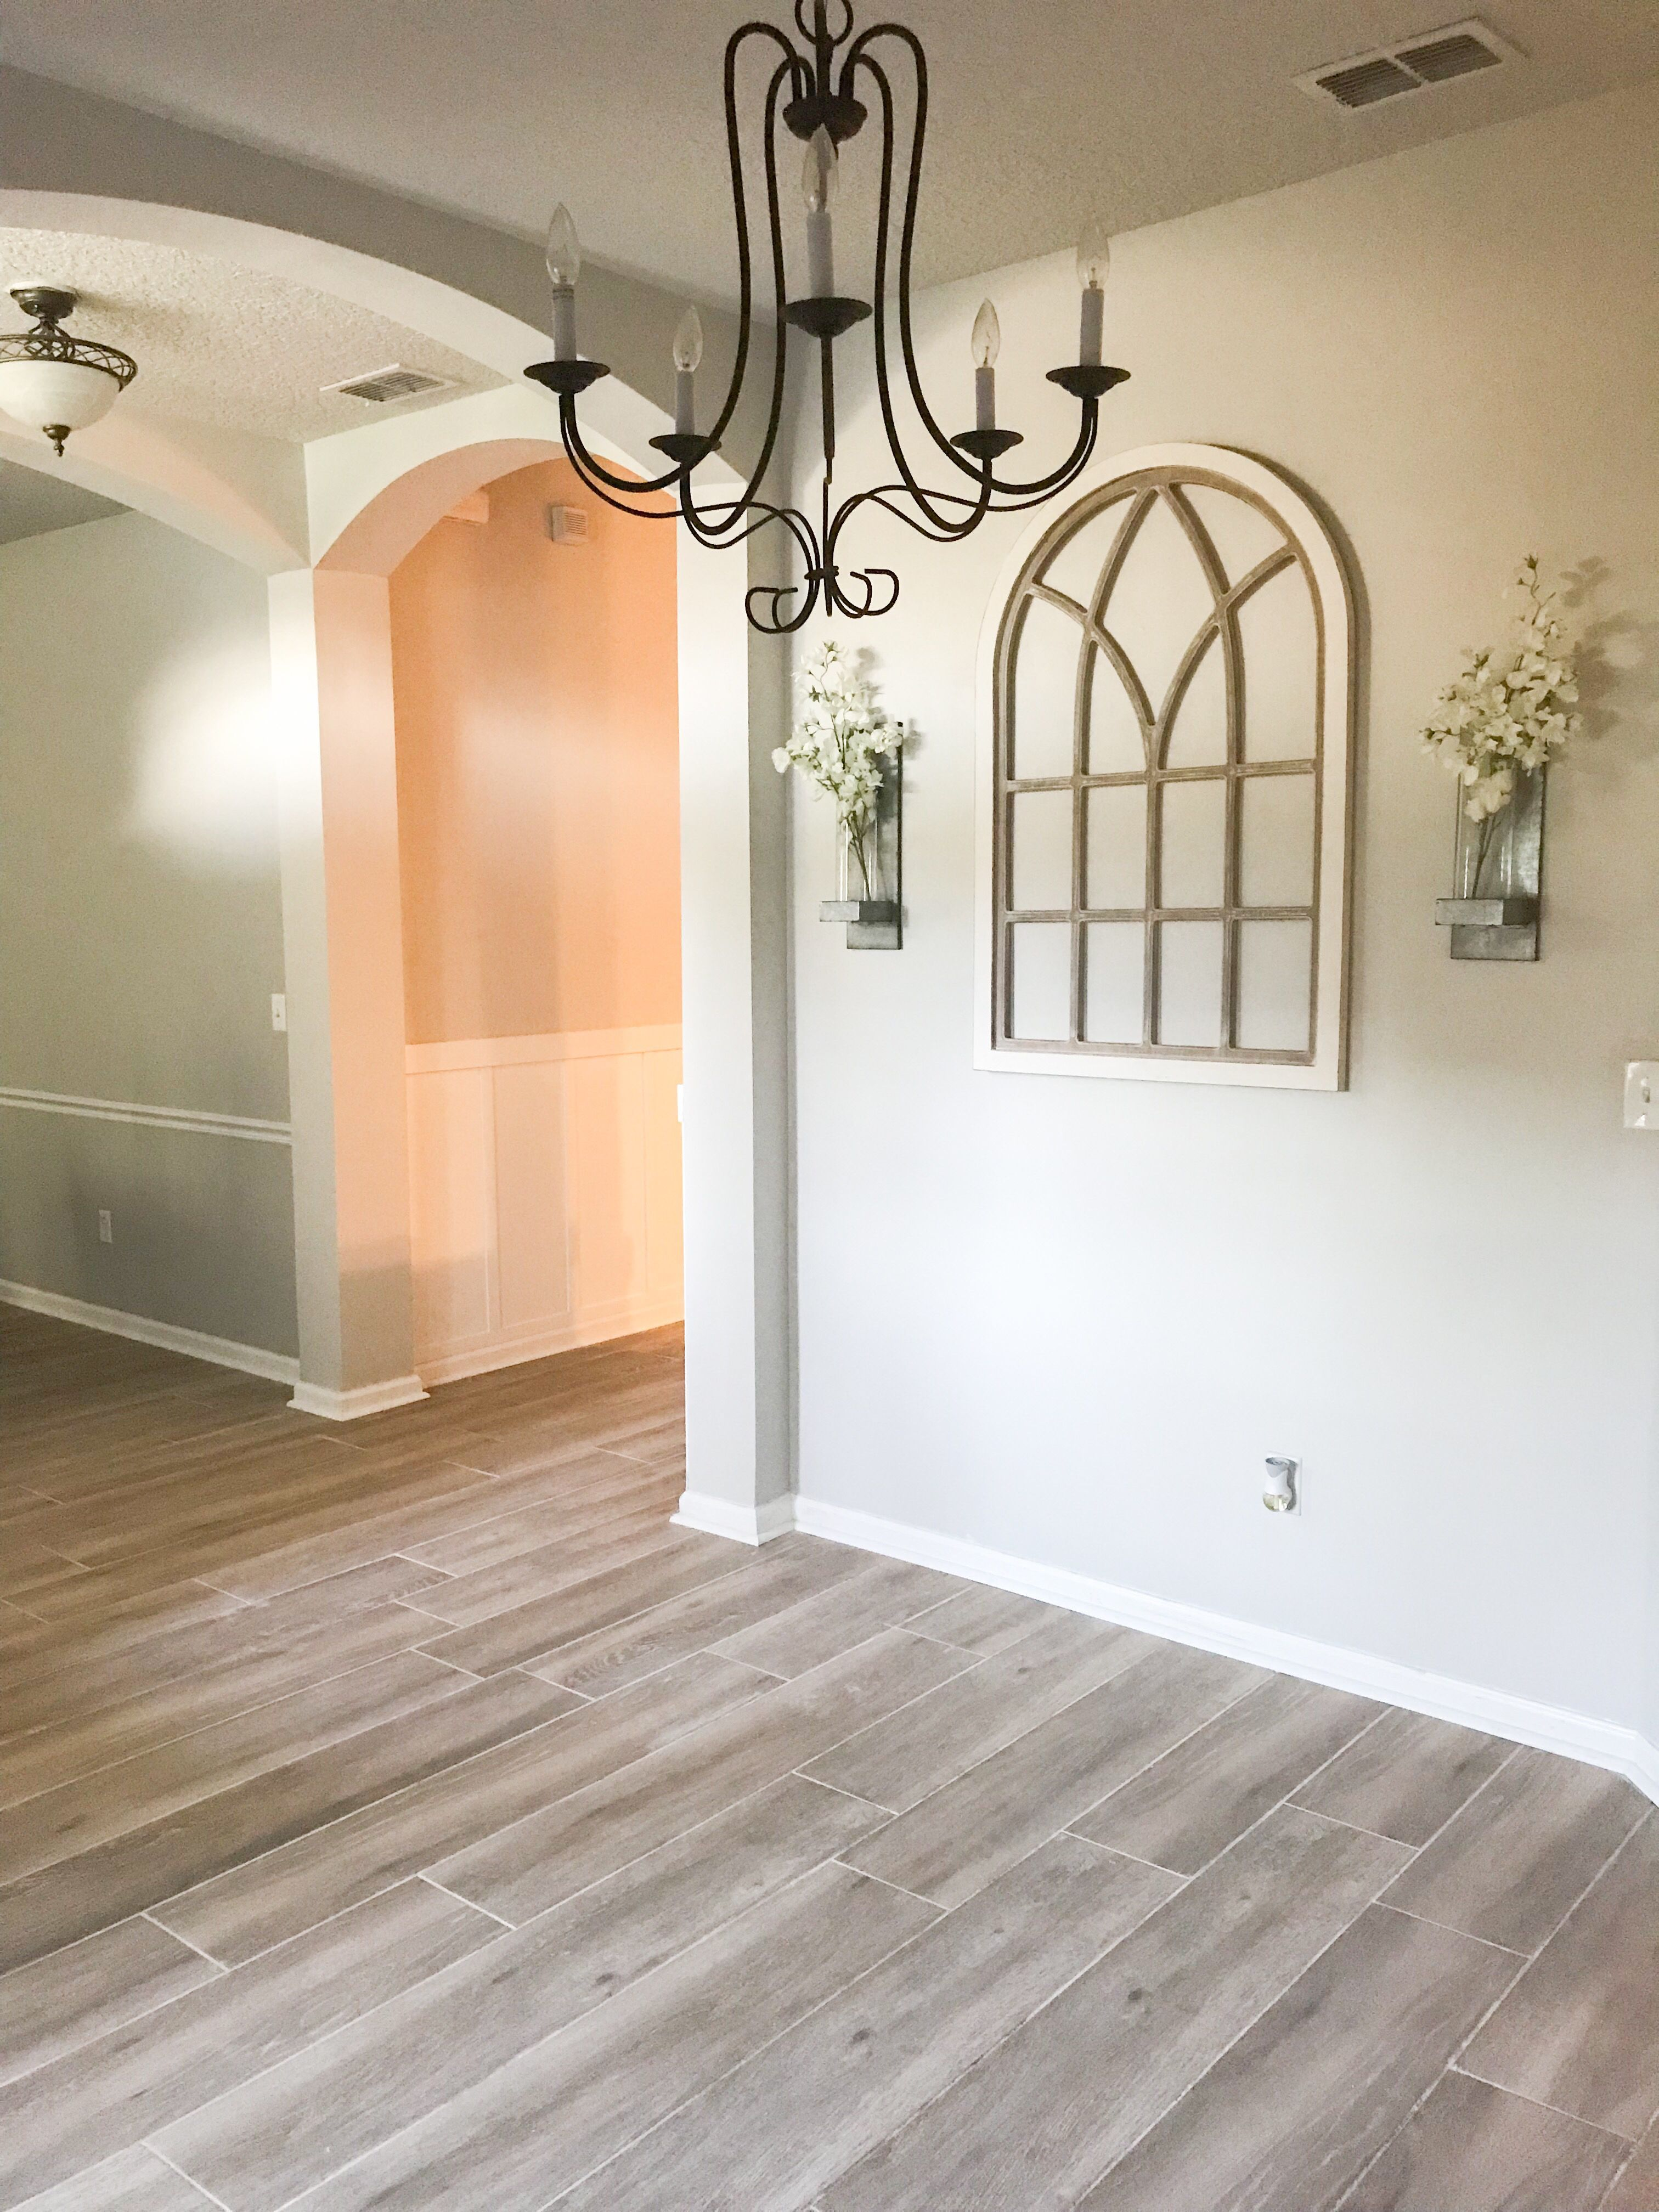 Home Remodeling Farmhouse flooring, Dining room wall